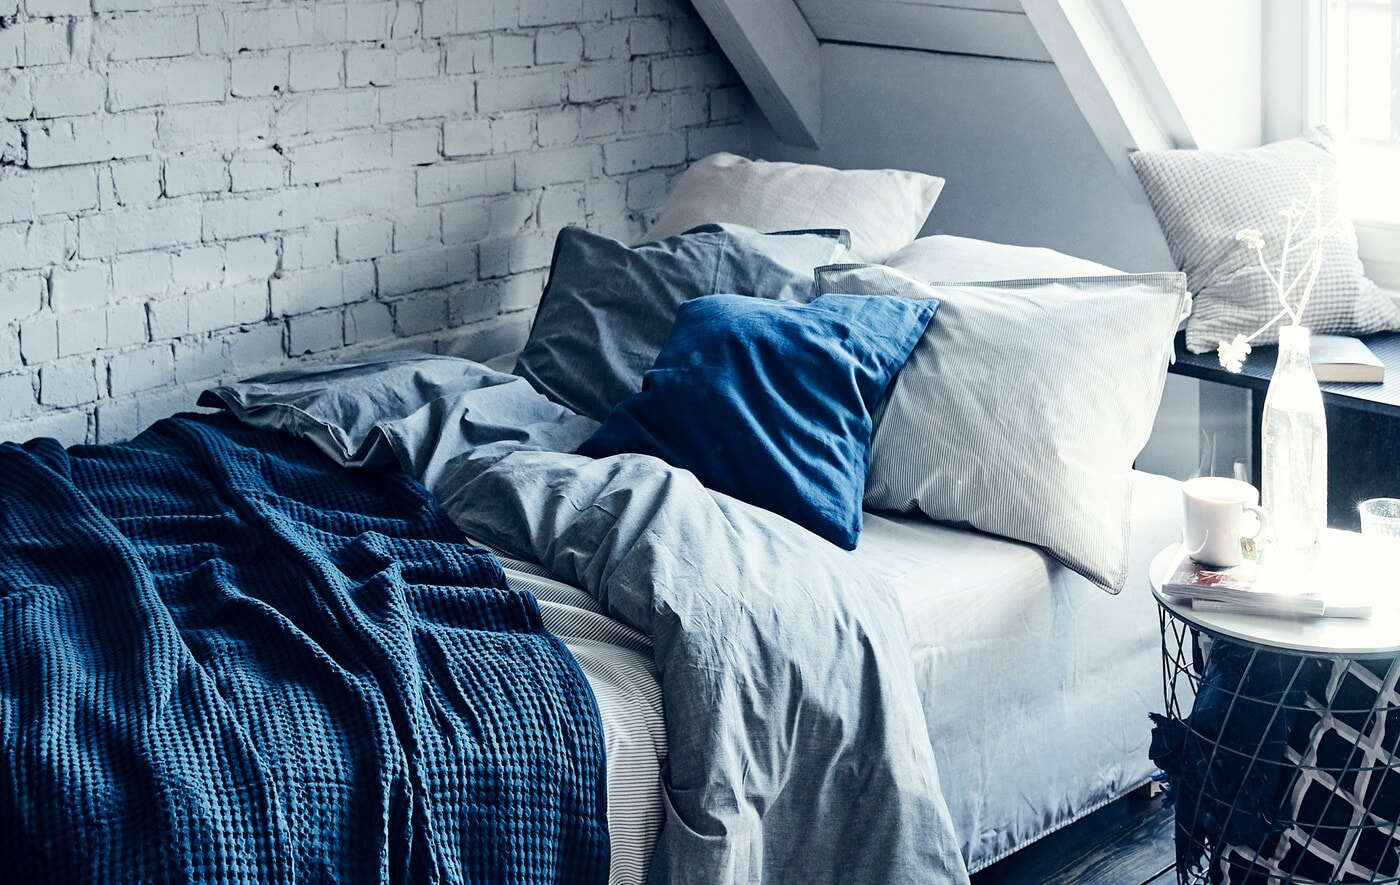 A bed with layered blue and white bedding and cushions against a white painted brick wall.